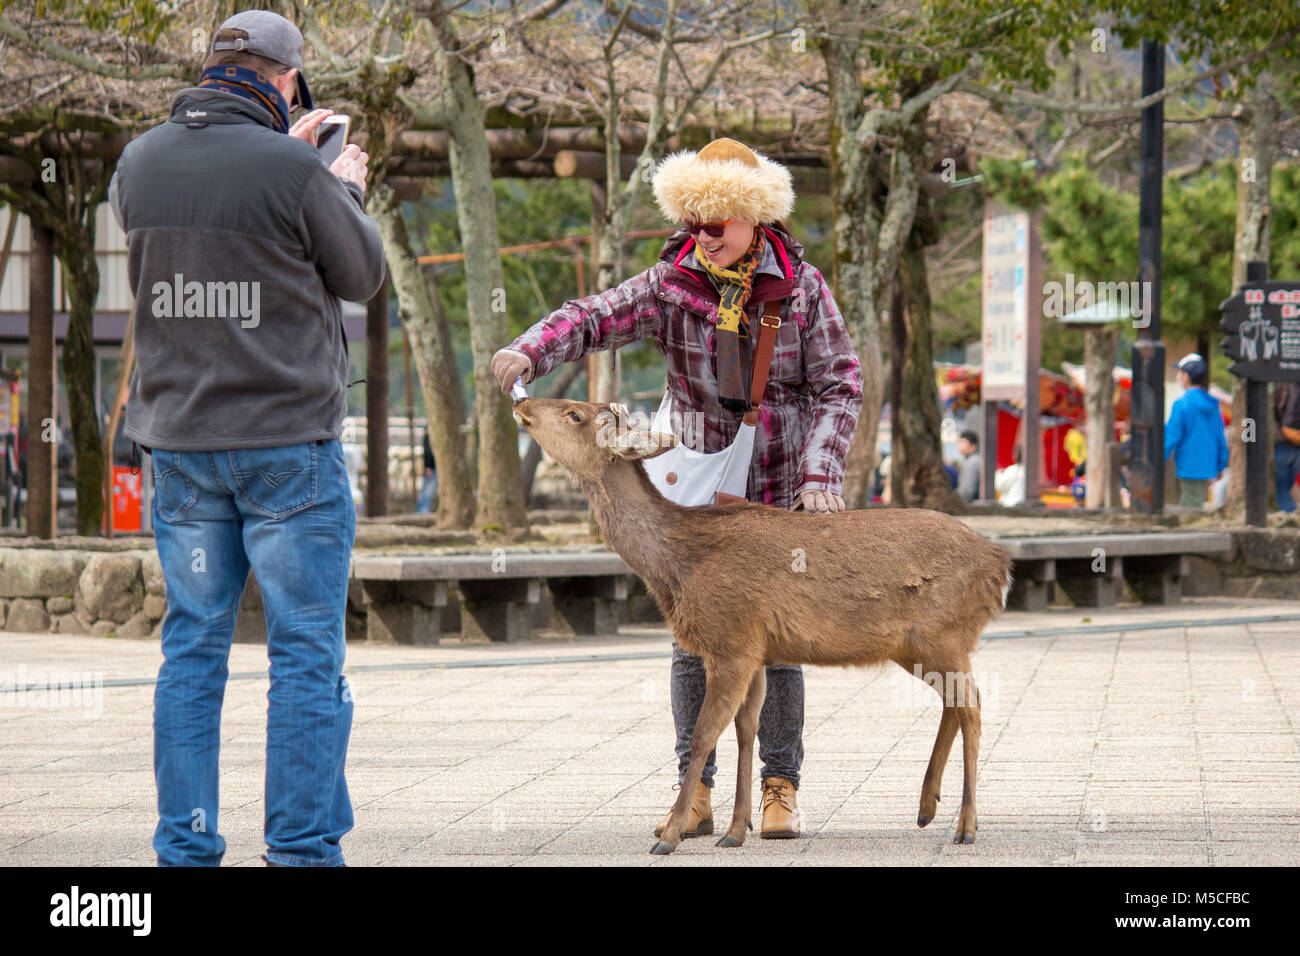 Itsukushima, also known as Miyajima, is a small island in Hiroshima Bay. Tame deer roam the island and often approach - Stock Image